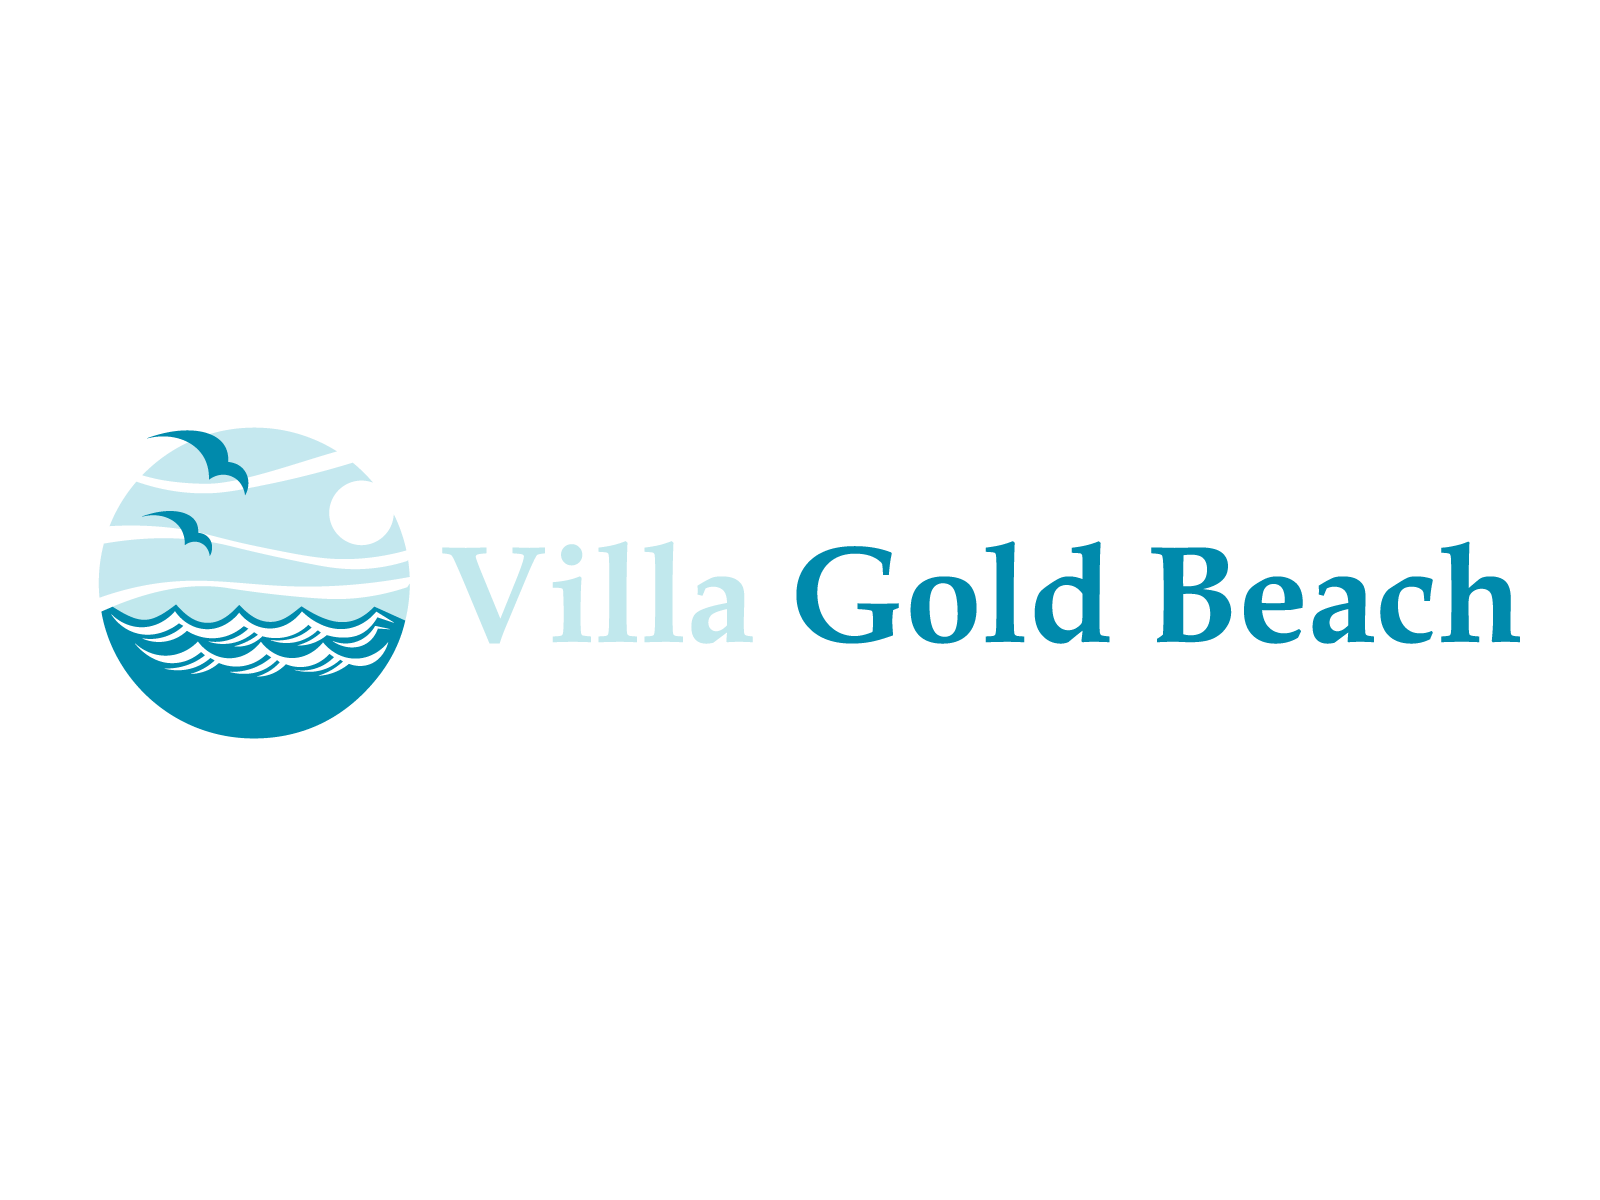 VILLA GOLD BEACH